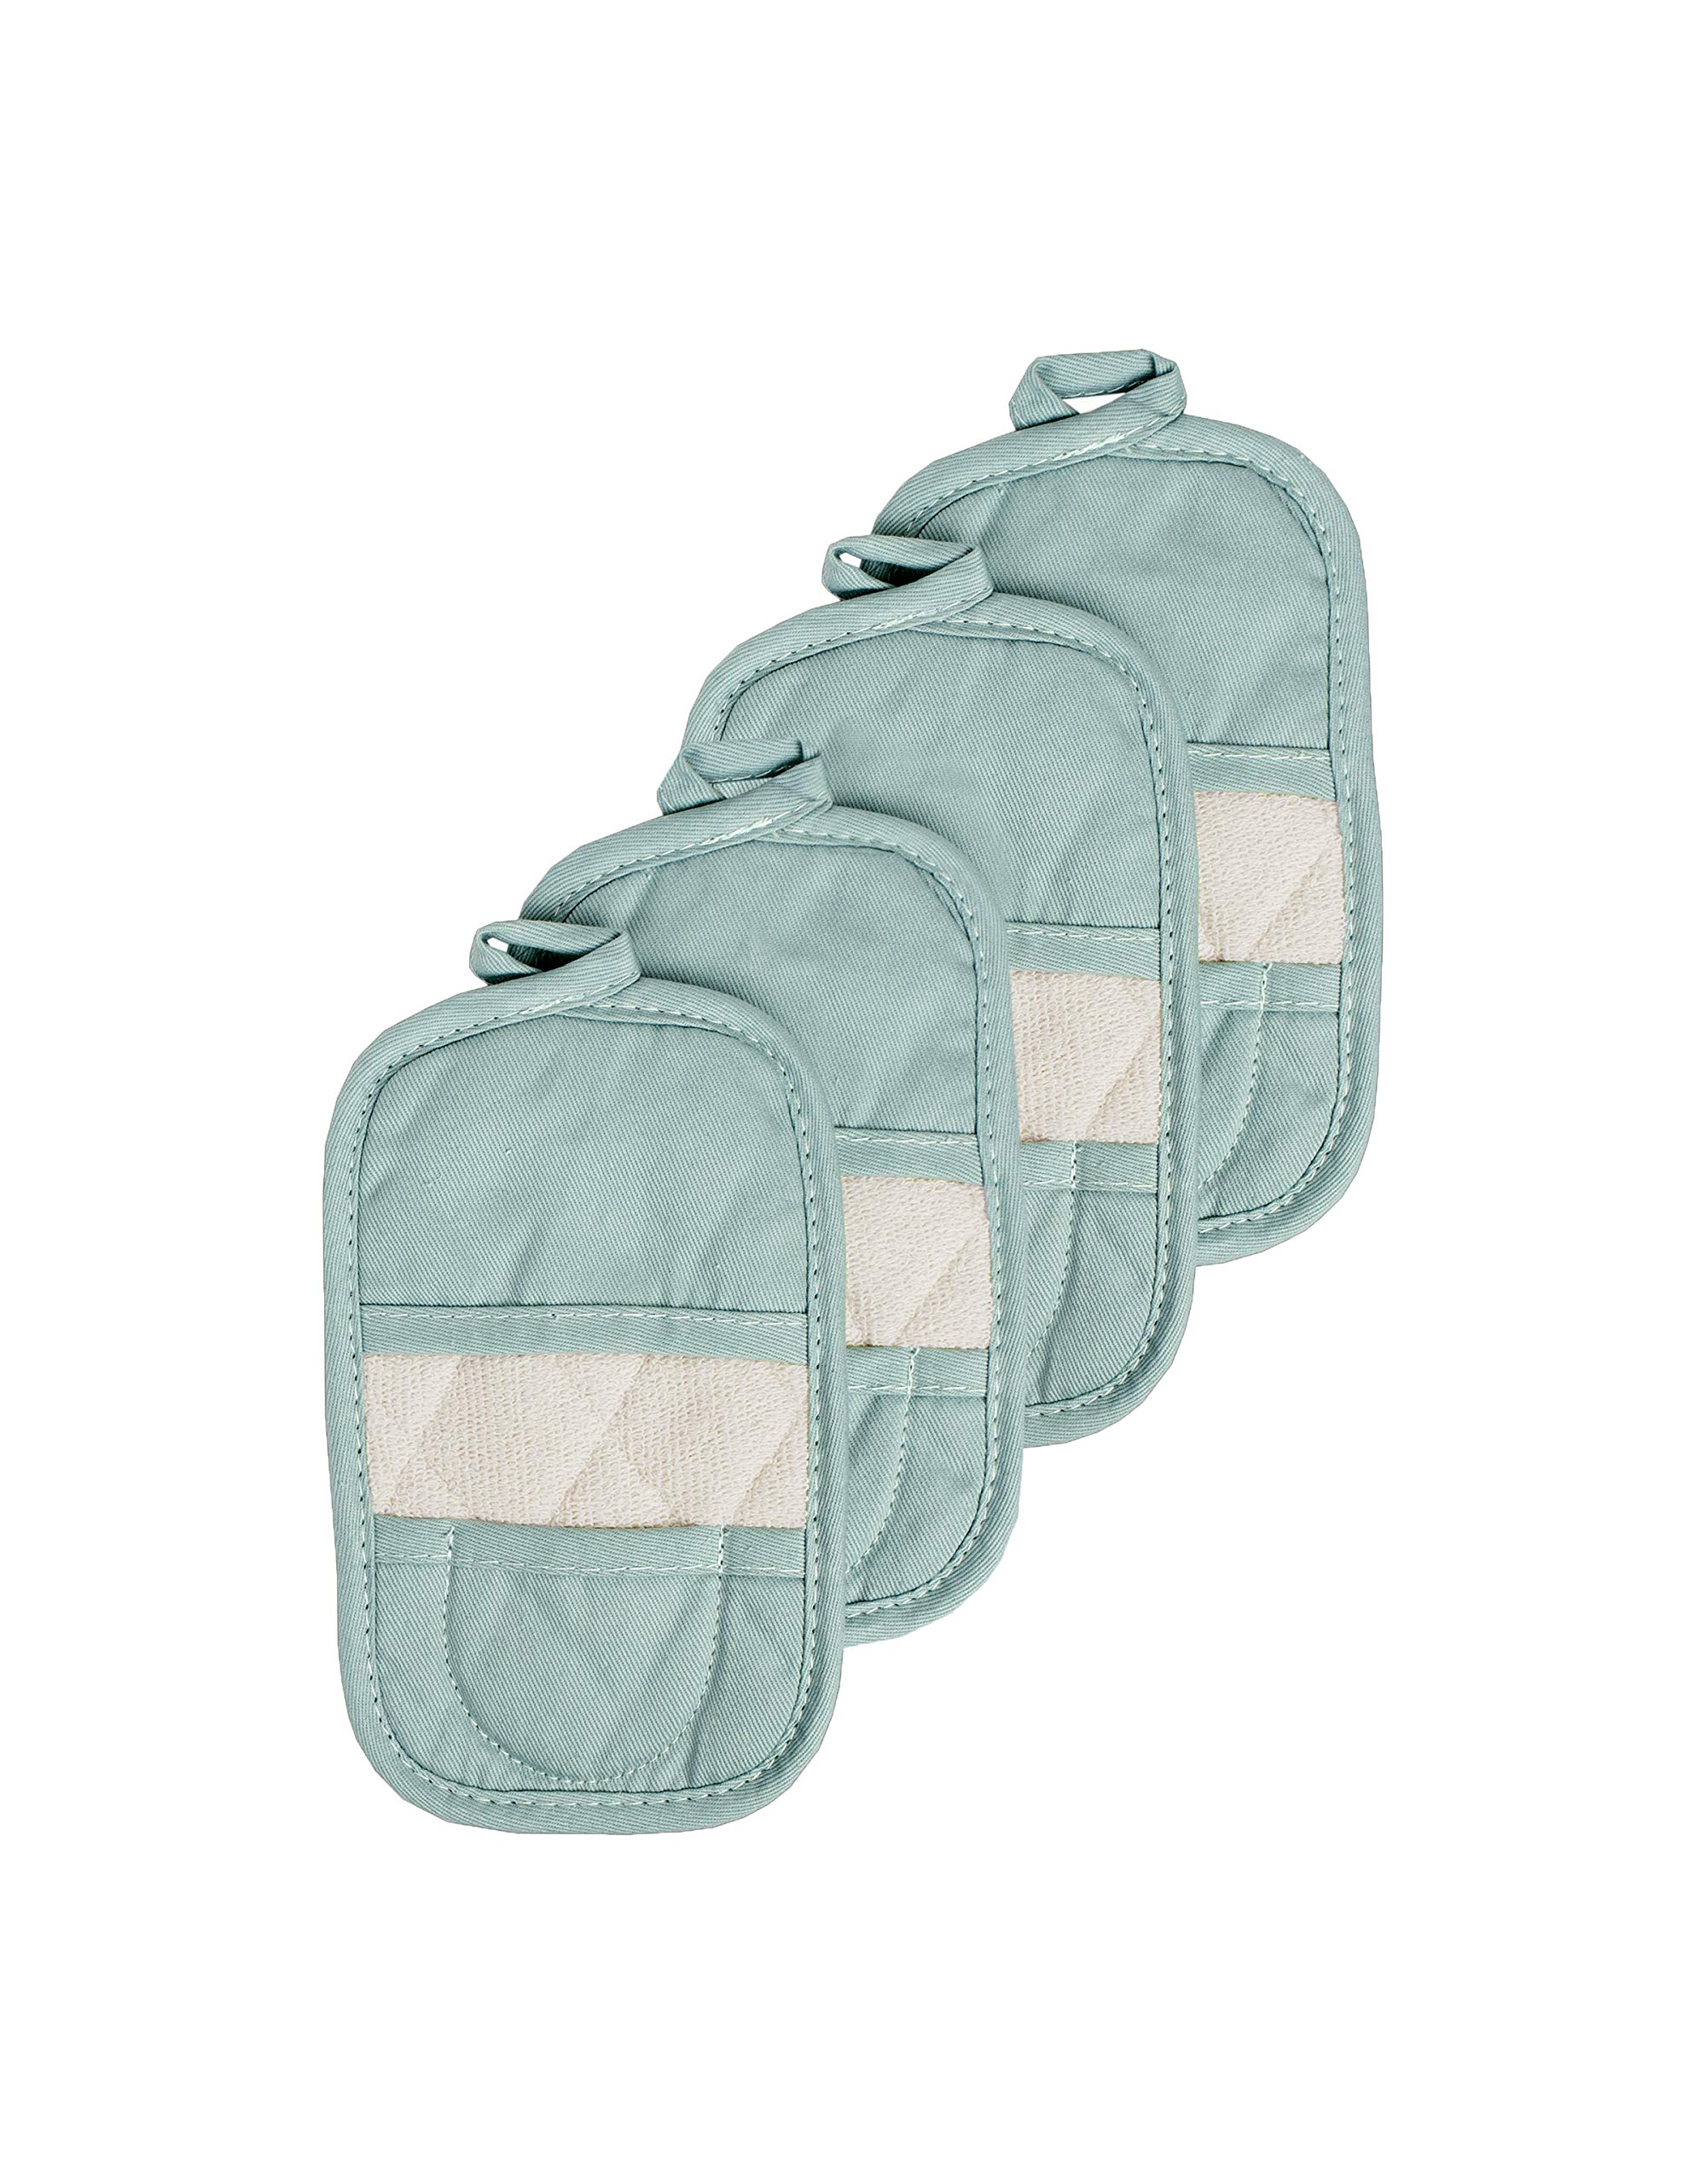 Ritz Royale Collection 100% Cotton Terry Cloth Mitz, Dual-Function Pot Holder/Oven Mitt Set, 4-Pack, Dew by Ritz